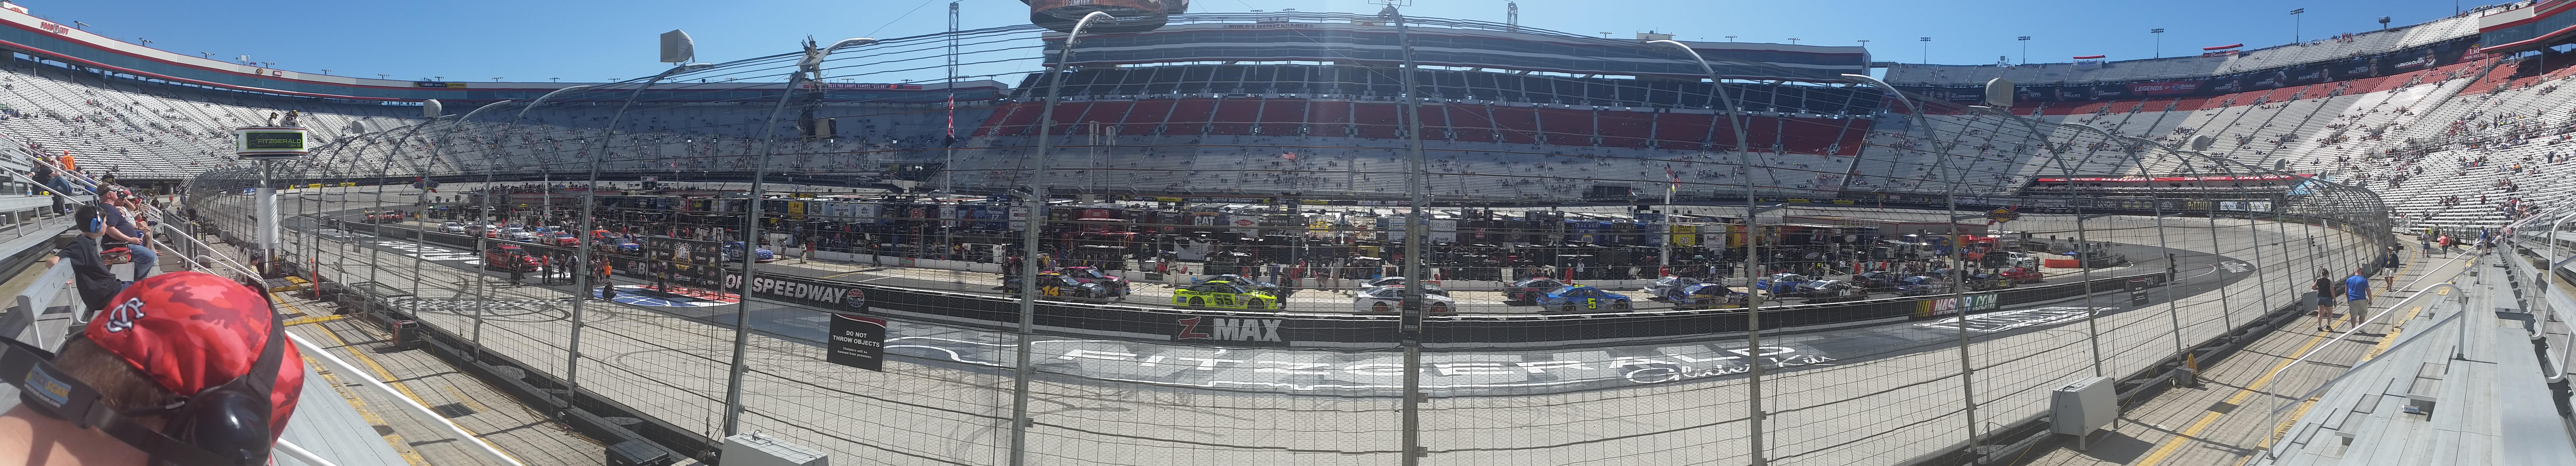 Bristol Motor Speedway Section The Allisons Row 1 Seat 3